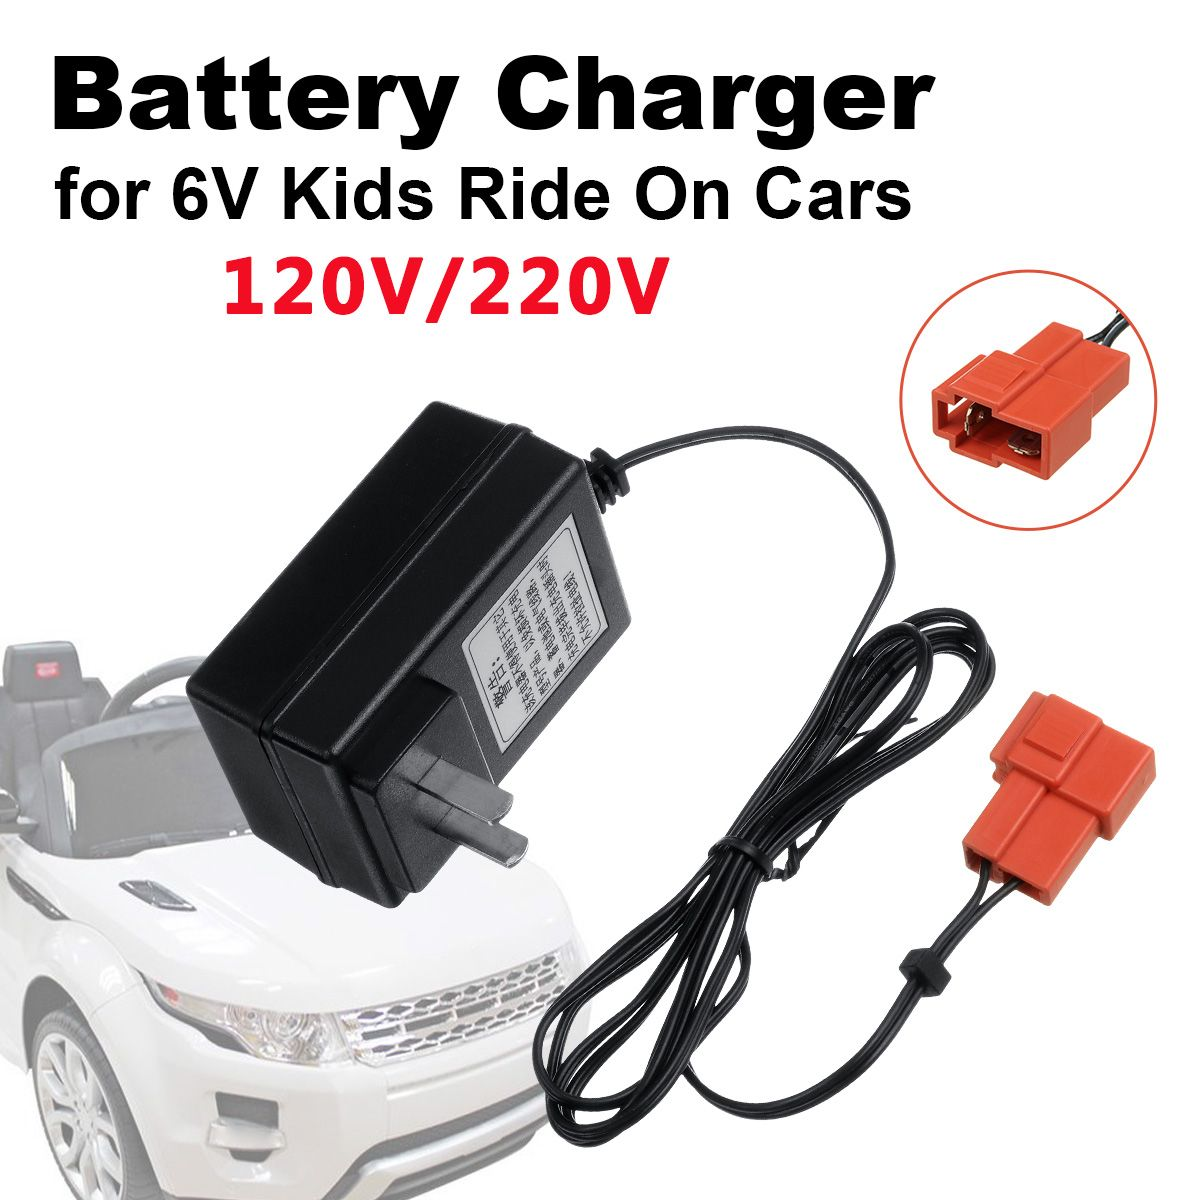 AC 120V/220V Battery Charger For 6V Kids Ride On Cars, Kid Trax For Disney Frozen,for Huffy For BMW X6 X5